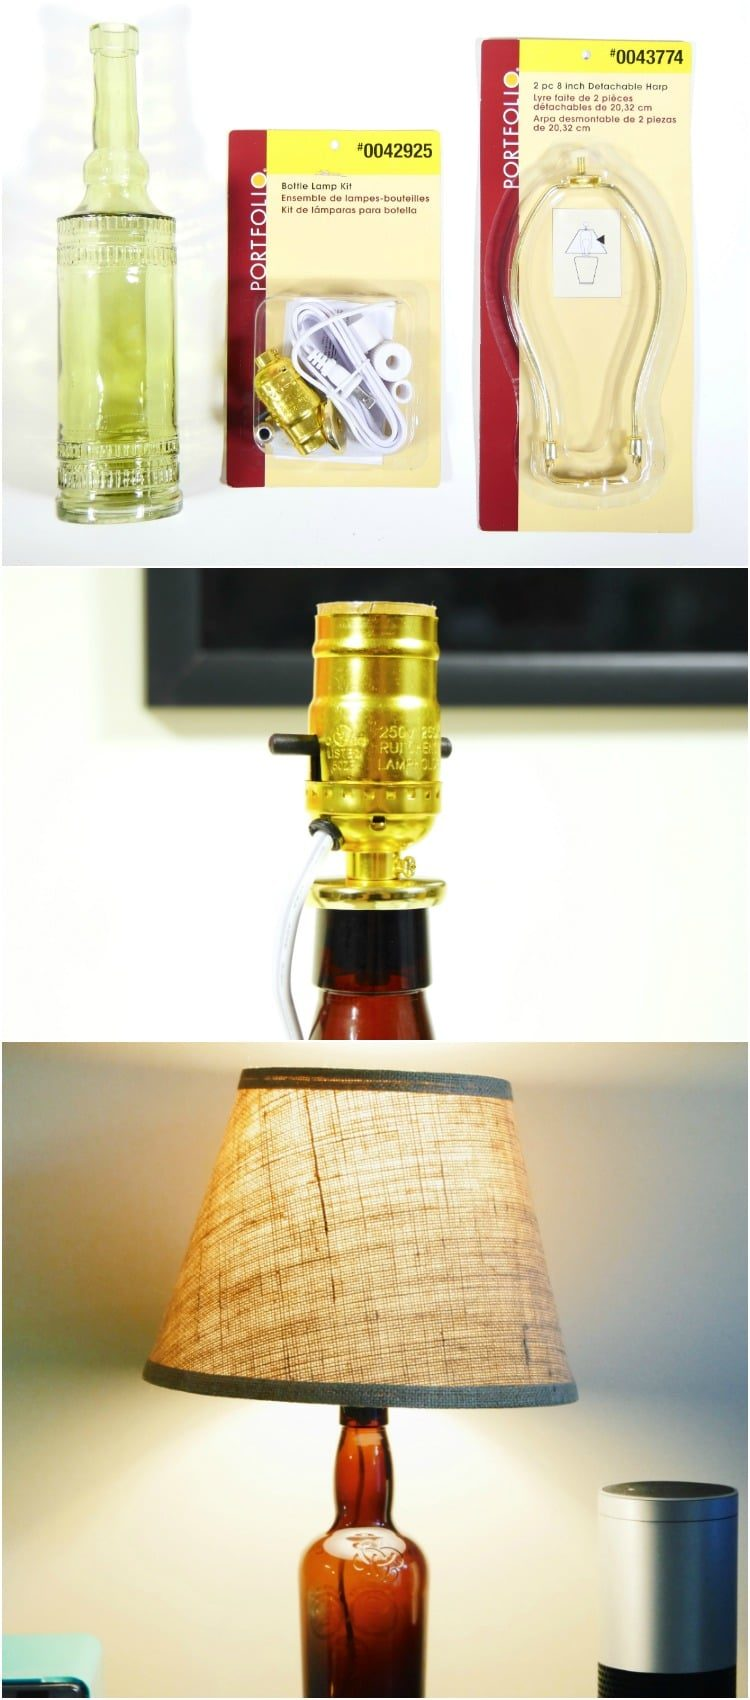 Turn an Old Liquor Bottle into a Desk Lamp in 10 Minutes